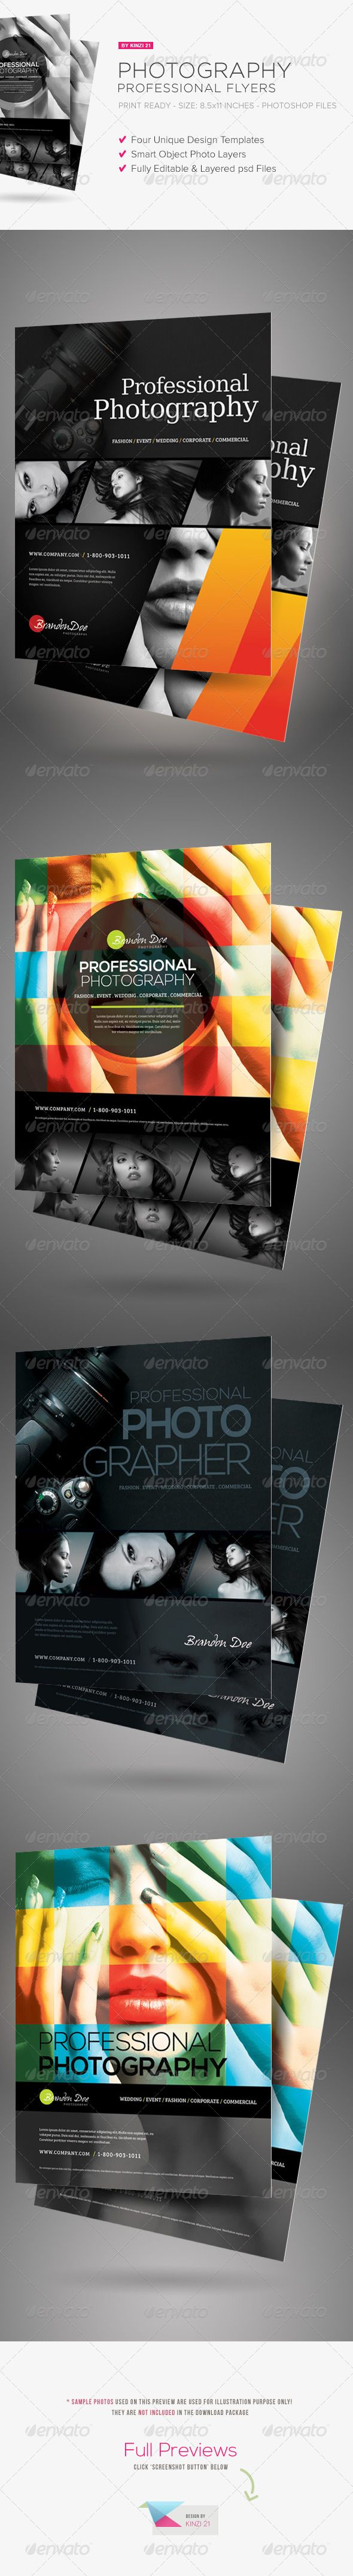 Professional Photography Flyers #GraphicRiver You might also be interested in these matching photography templates: Professional Photography Flyers These templates are perfect for photography service or for professional photographers who need a stylish, modern, professional flyer to promote their photography service or business. There are four variant designs in the template pack, a great value for your purchase! All are in a separate file, so in total there are four photoshop ...